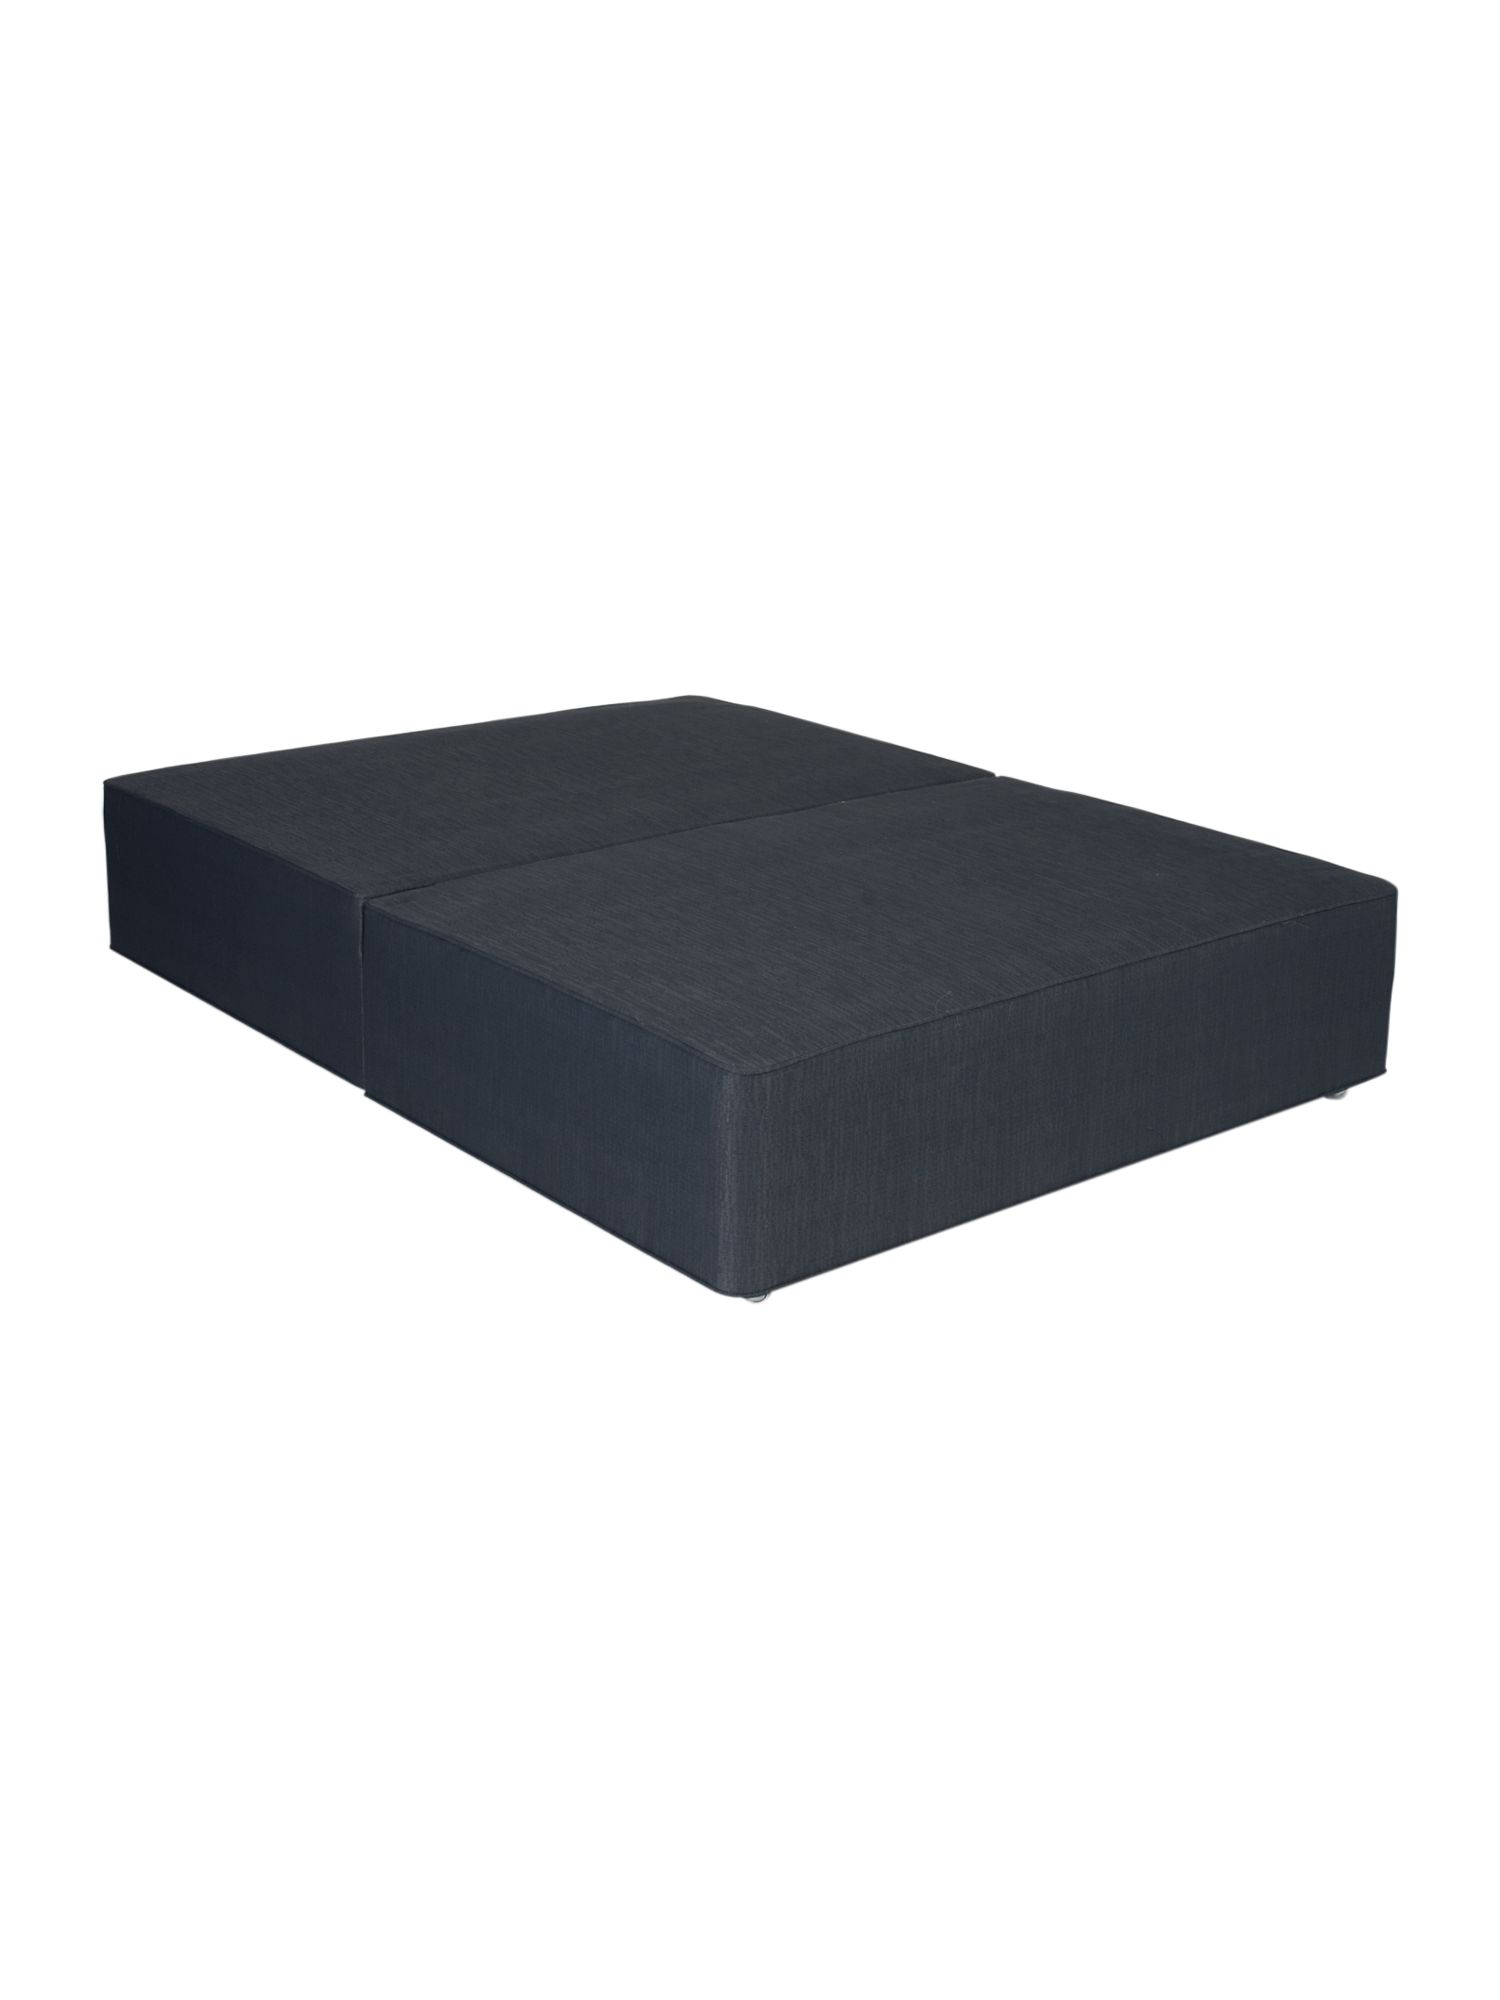 Blueberry sprung edge divan range